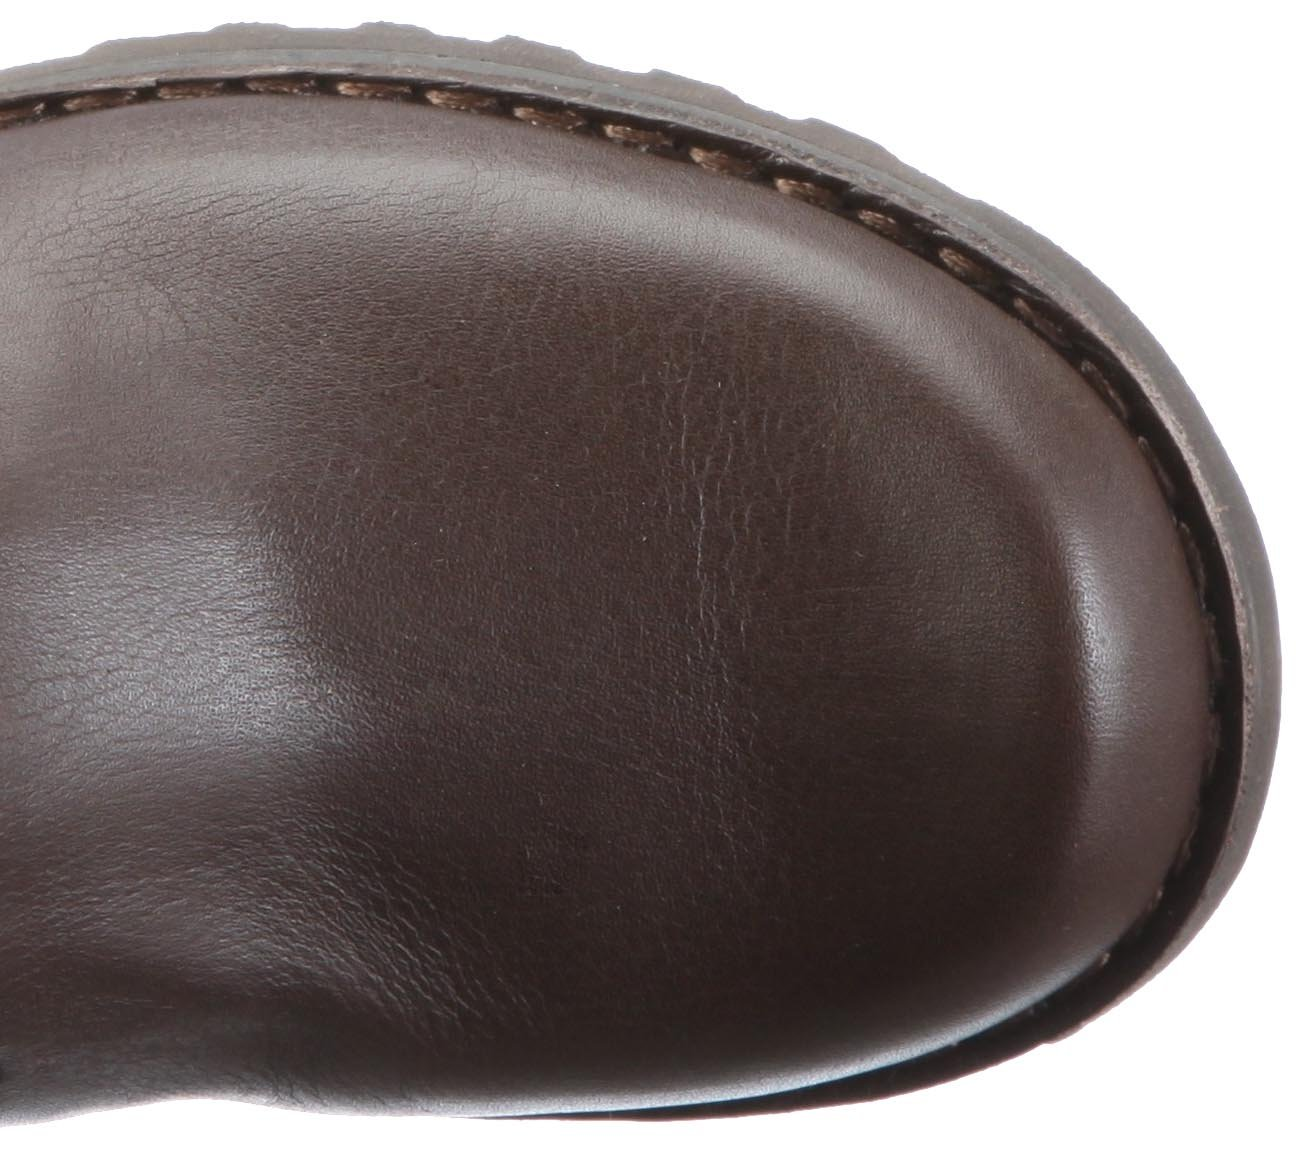 UGG Australia Children's Riverton Suede Boots,Chocolate/Chocolate,5 Child US by UGG (Image #7)